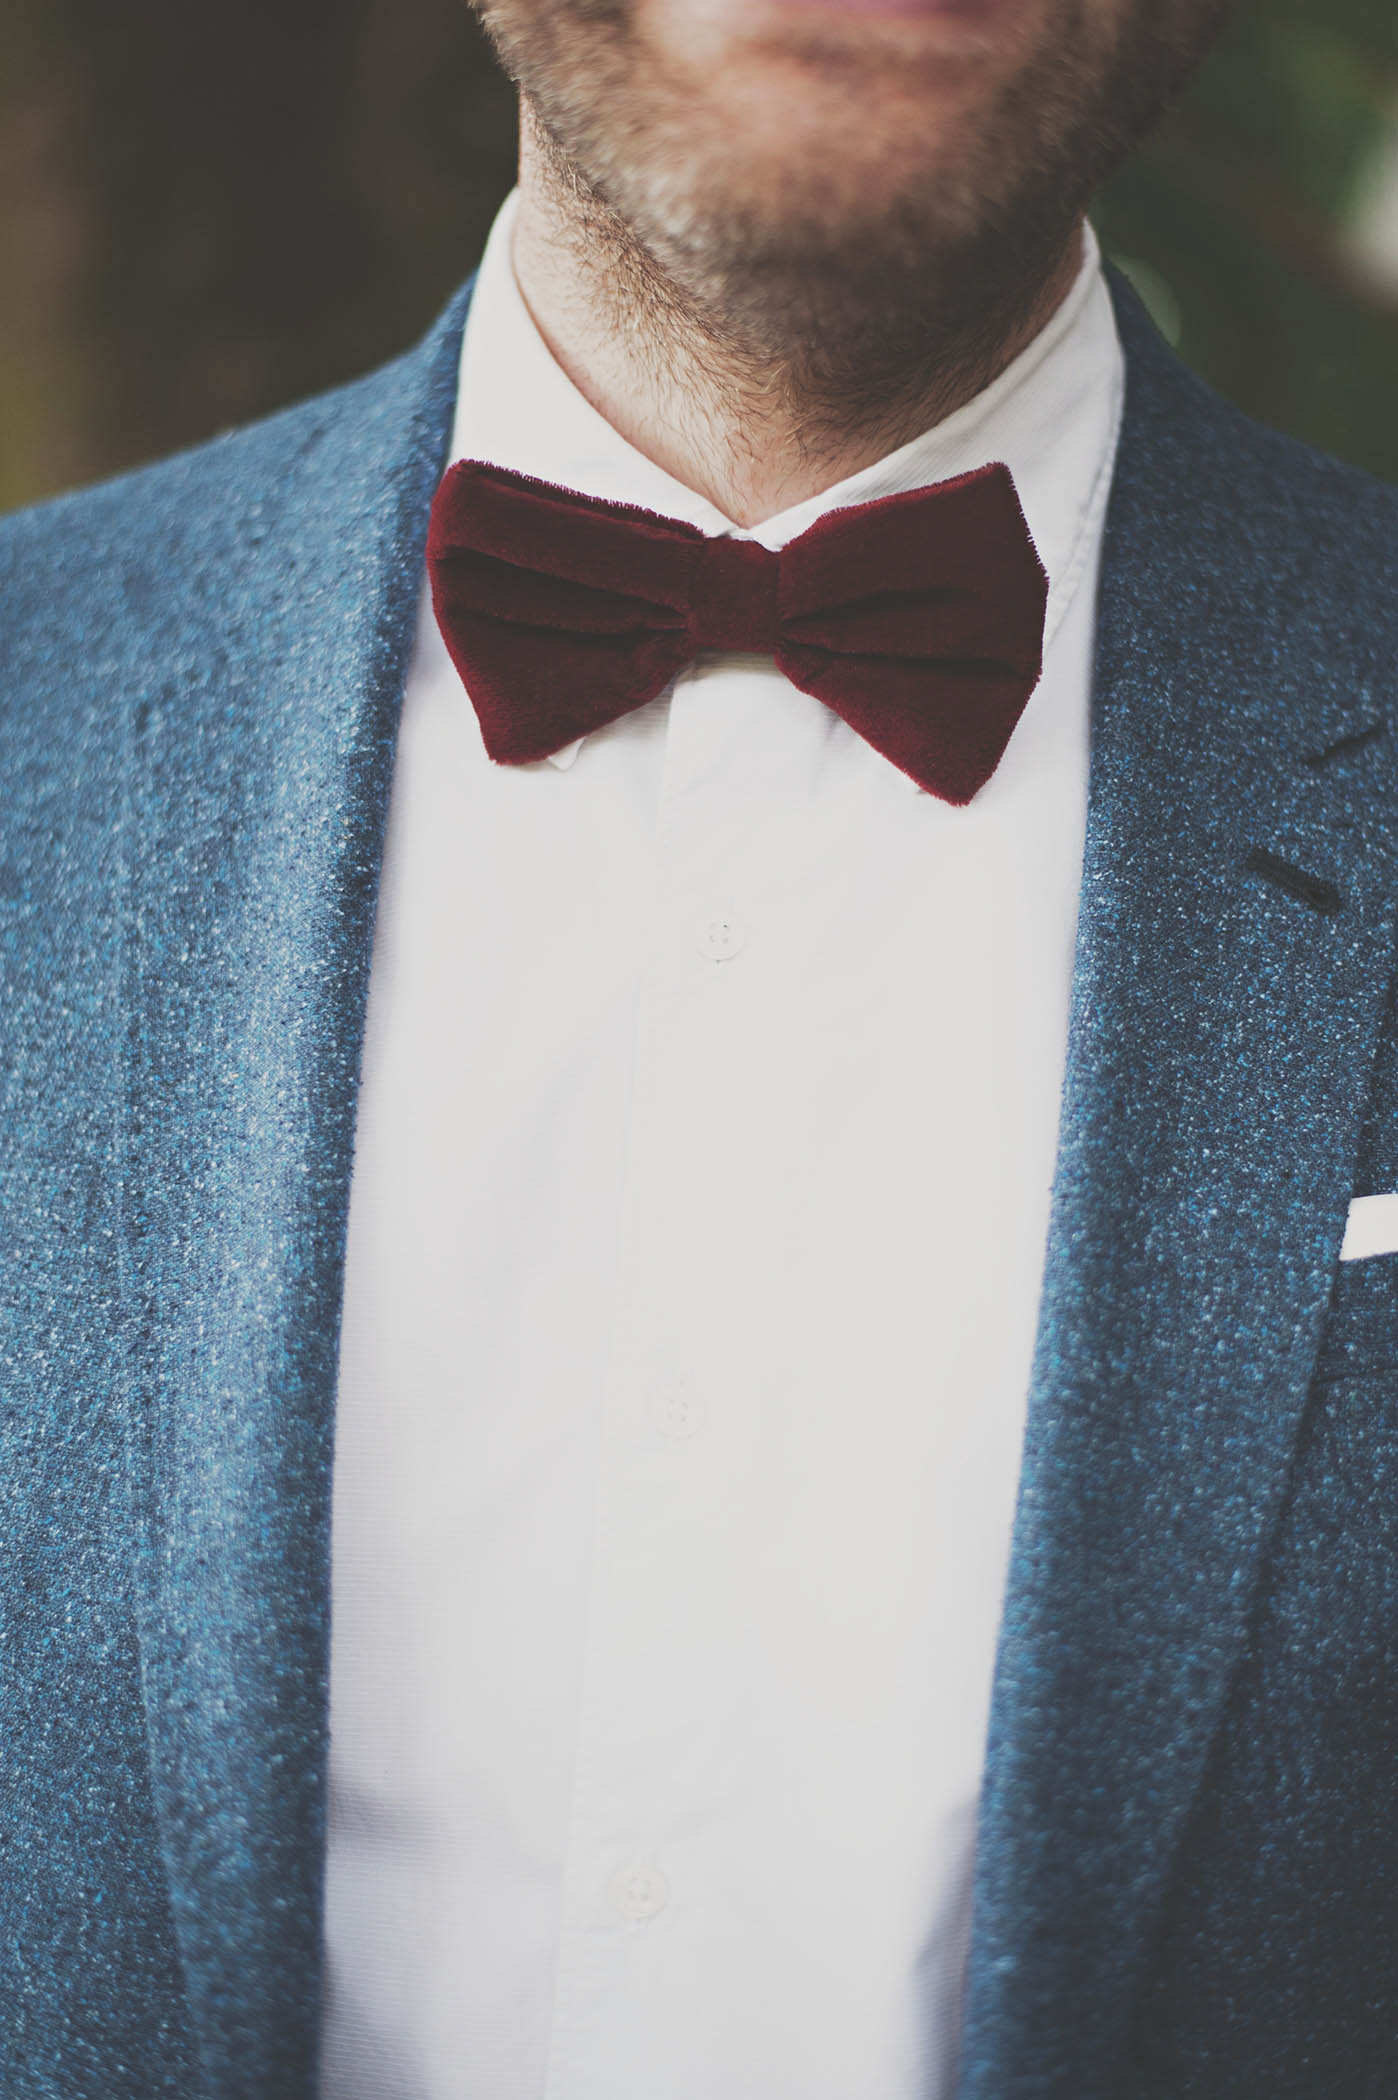 Trader Lodge wedding 2014, Dapper groom with bow tie